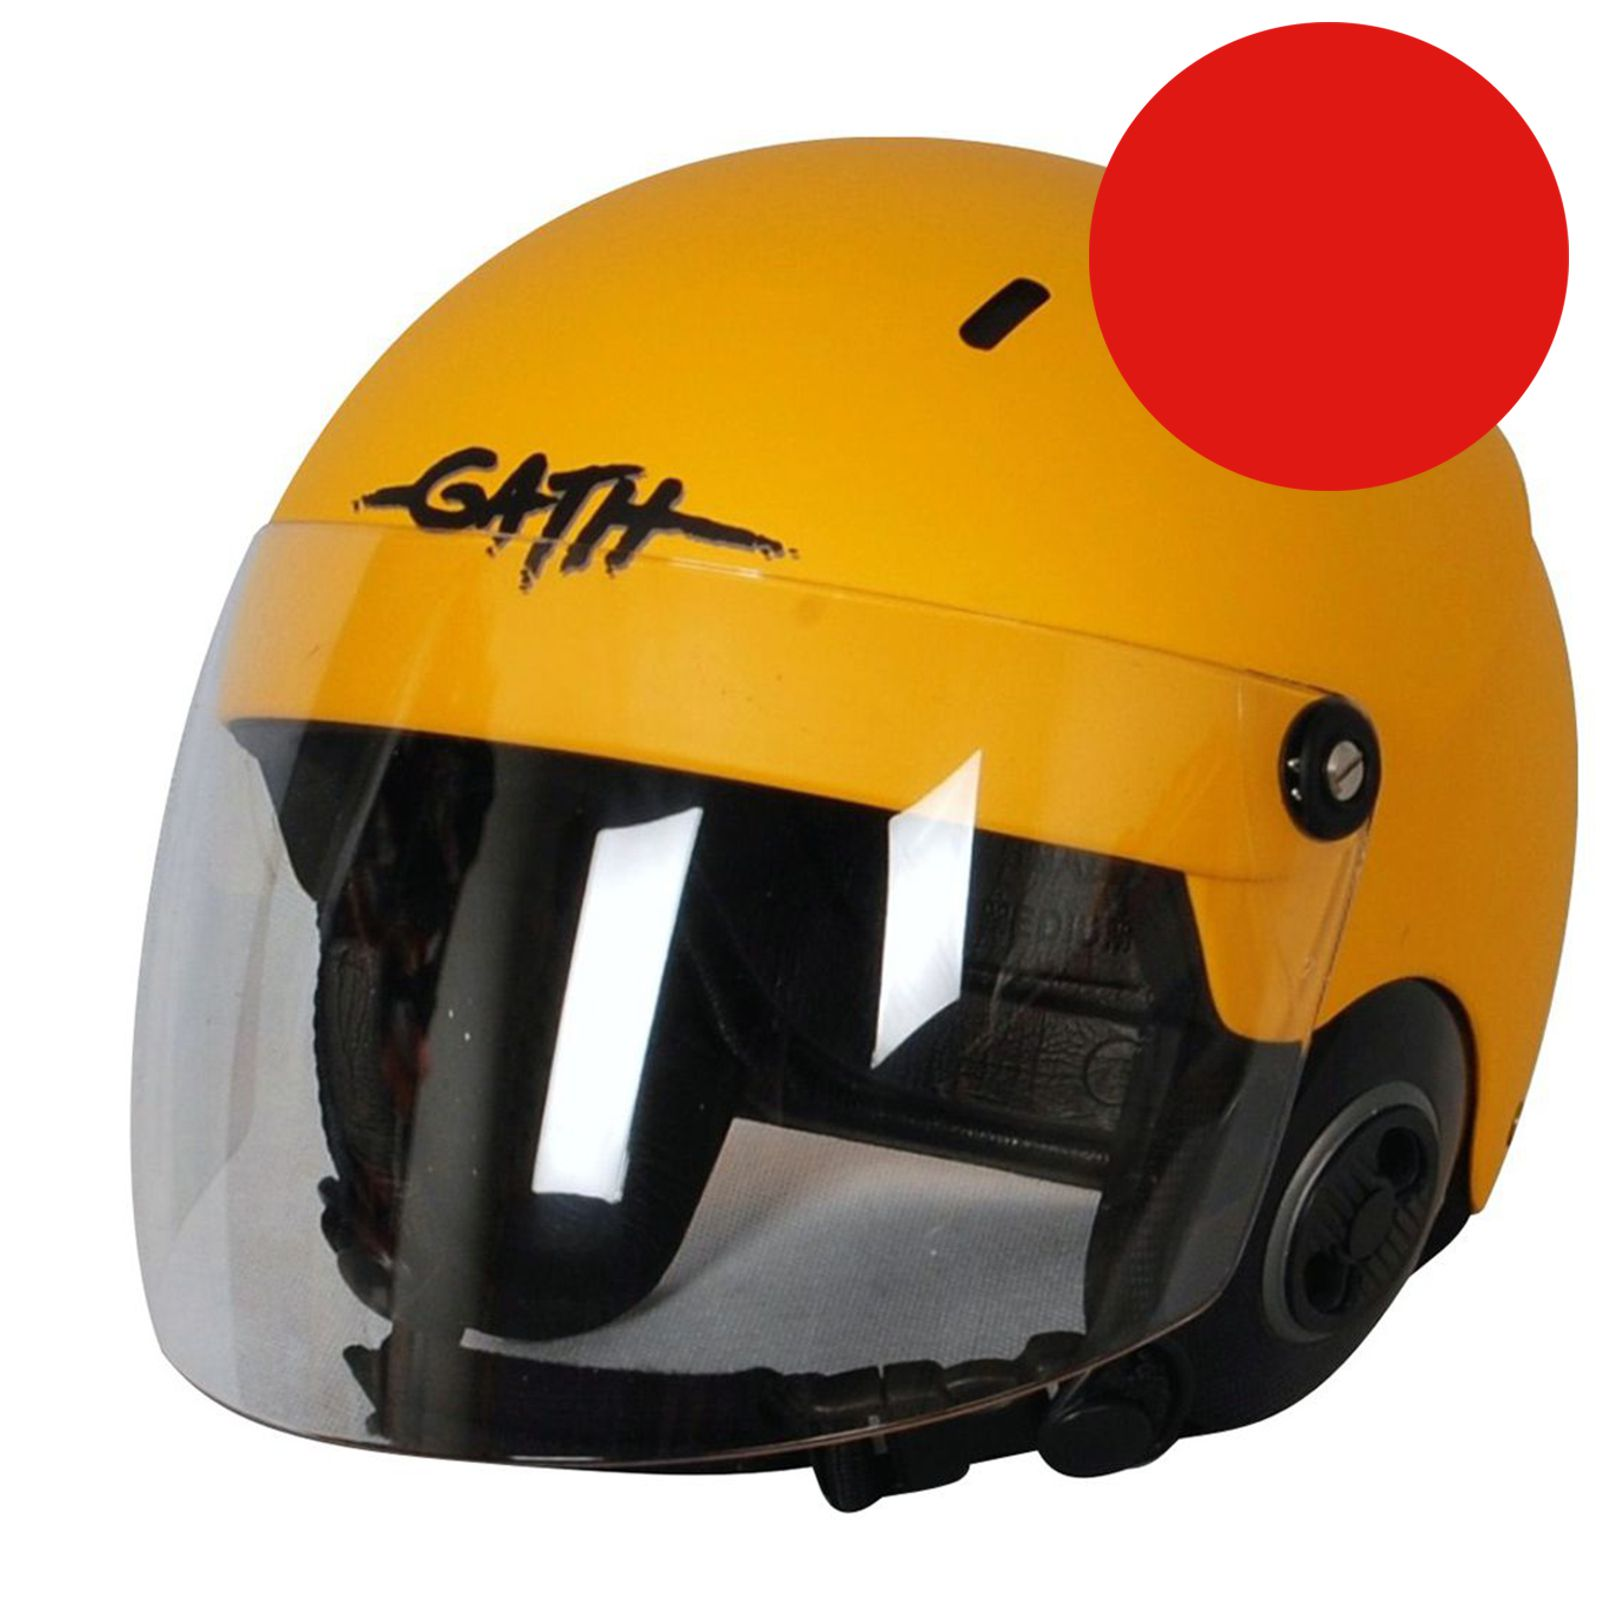 GATH Helm RESCUE Safety Rot matt Gr L mit klarem Vollvisier